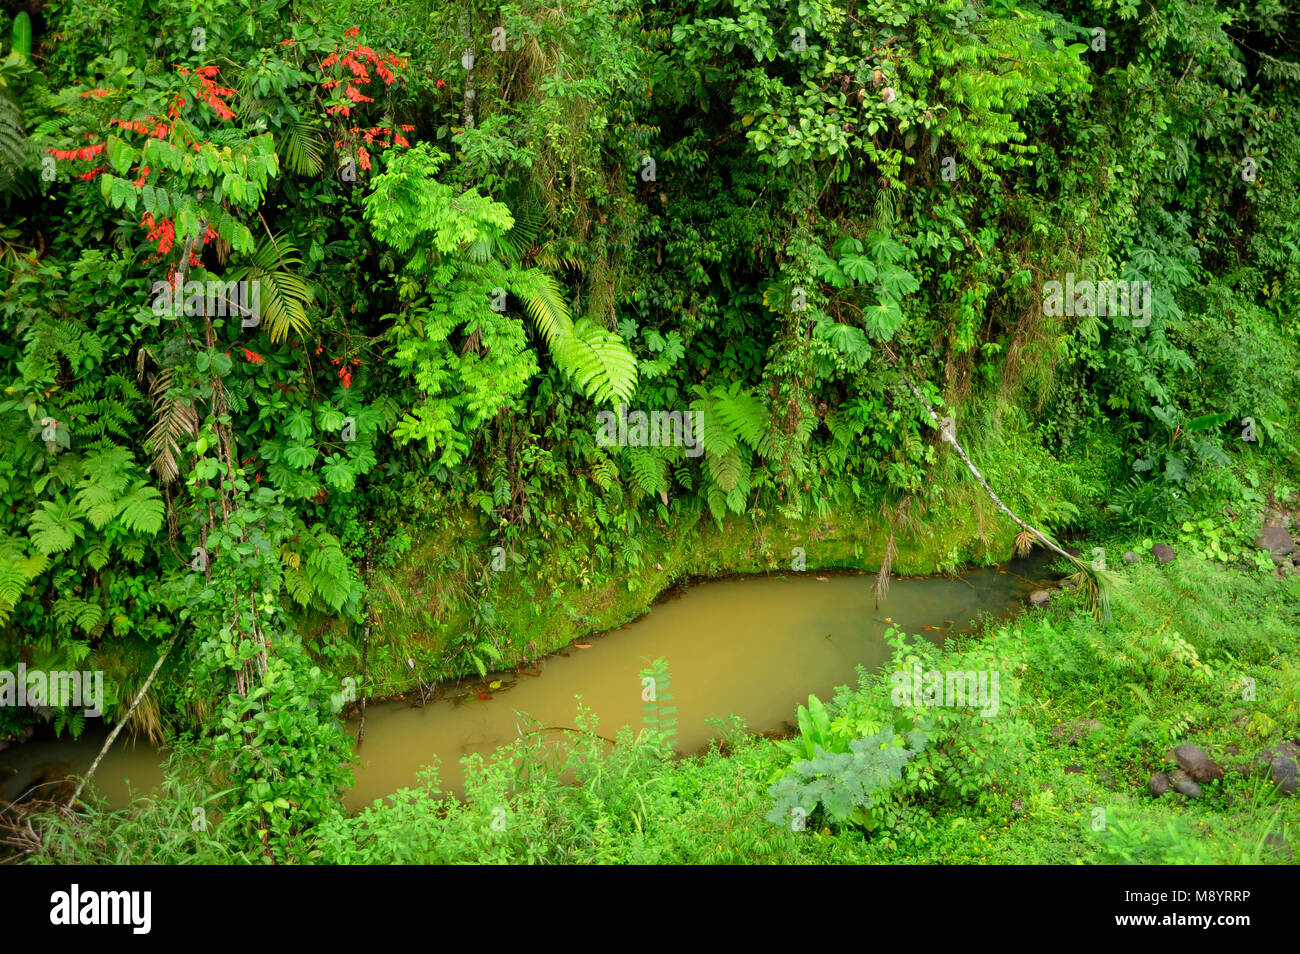 Lush, tropical plants surround a small pond of collected rain in Costa Rica's Tirimbina Biological Reserve. Stock Photo